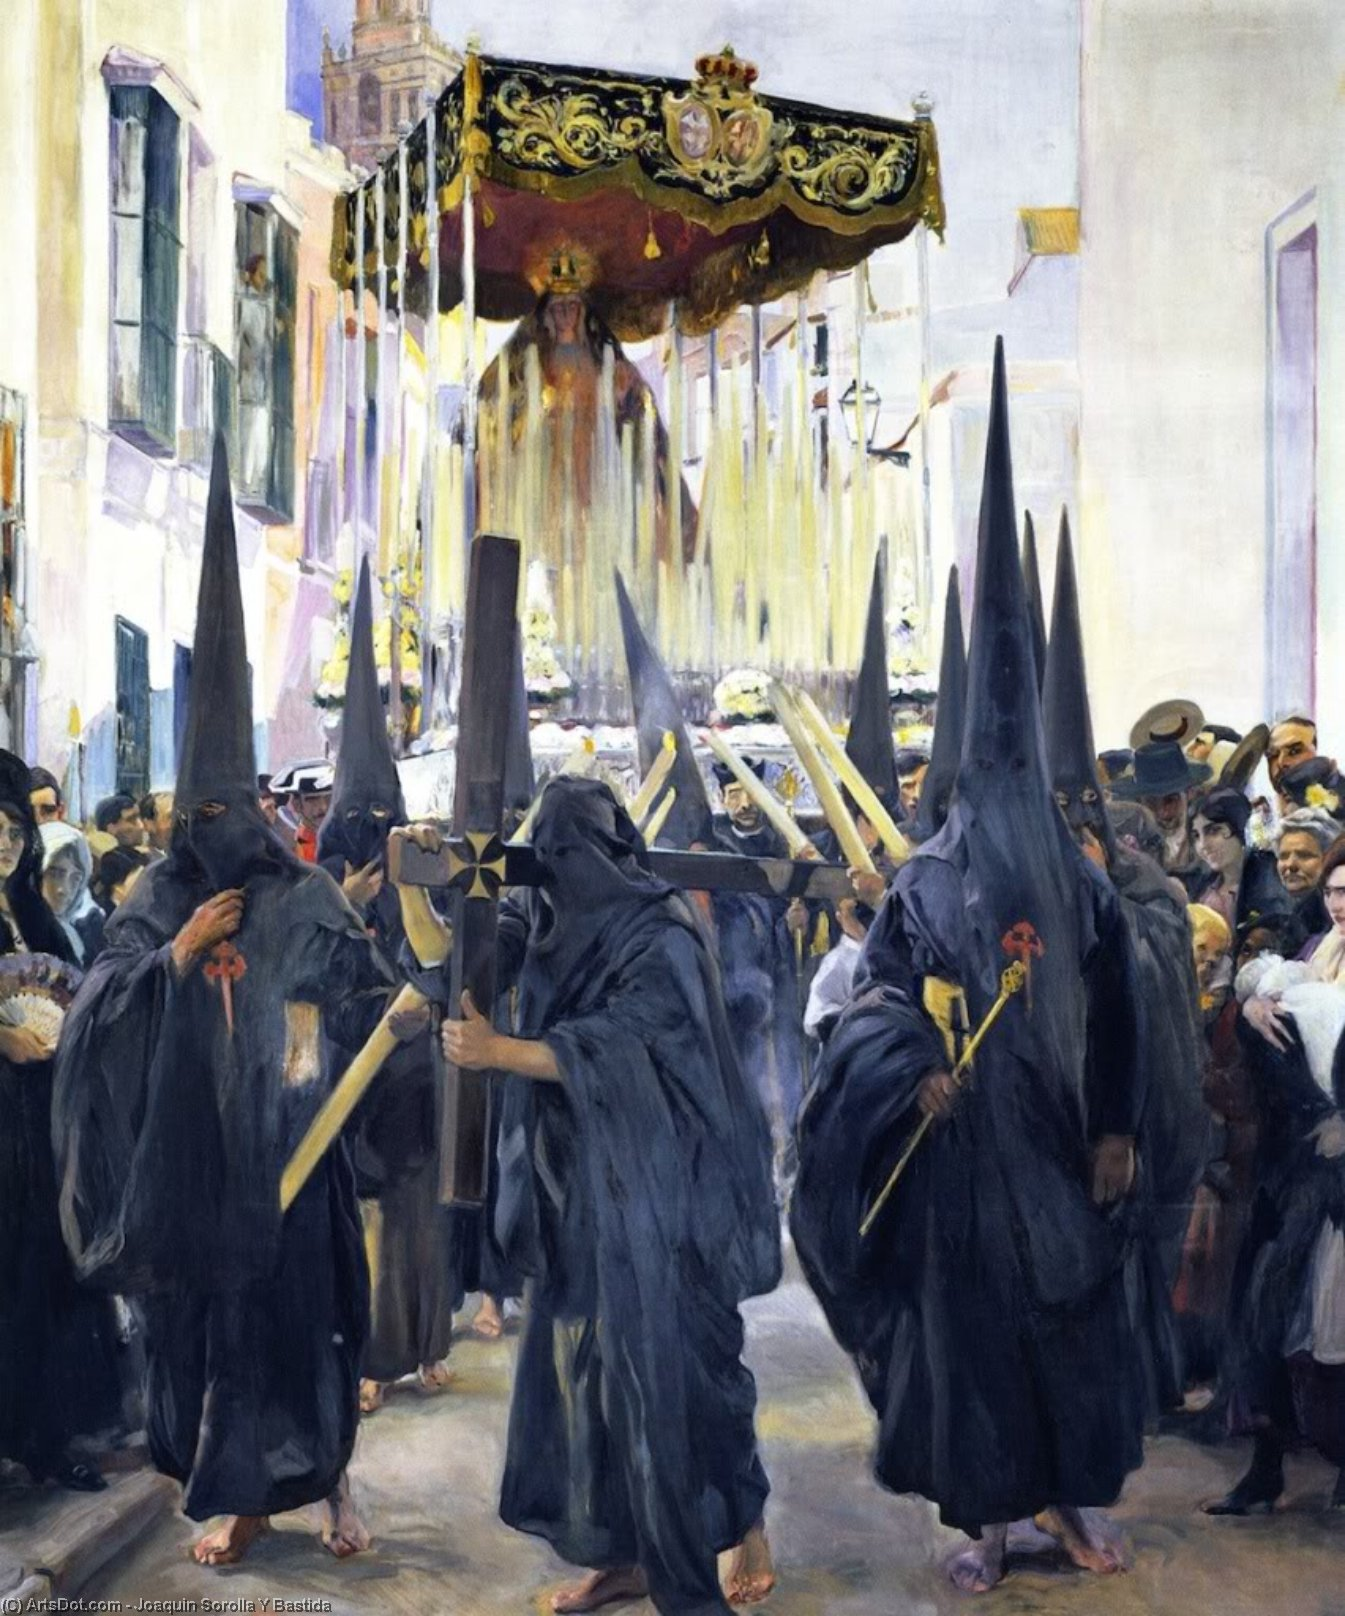 Penitents, Holy Week, Seville, Oil On Canvas by Joaquin Sorolla Y Bastida (1863-1923, Spain)